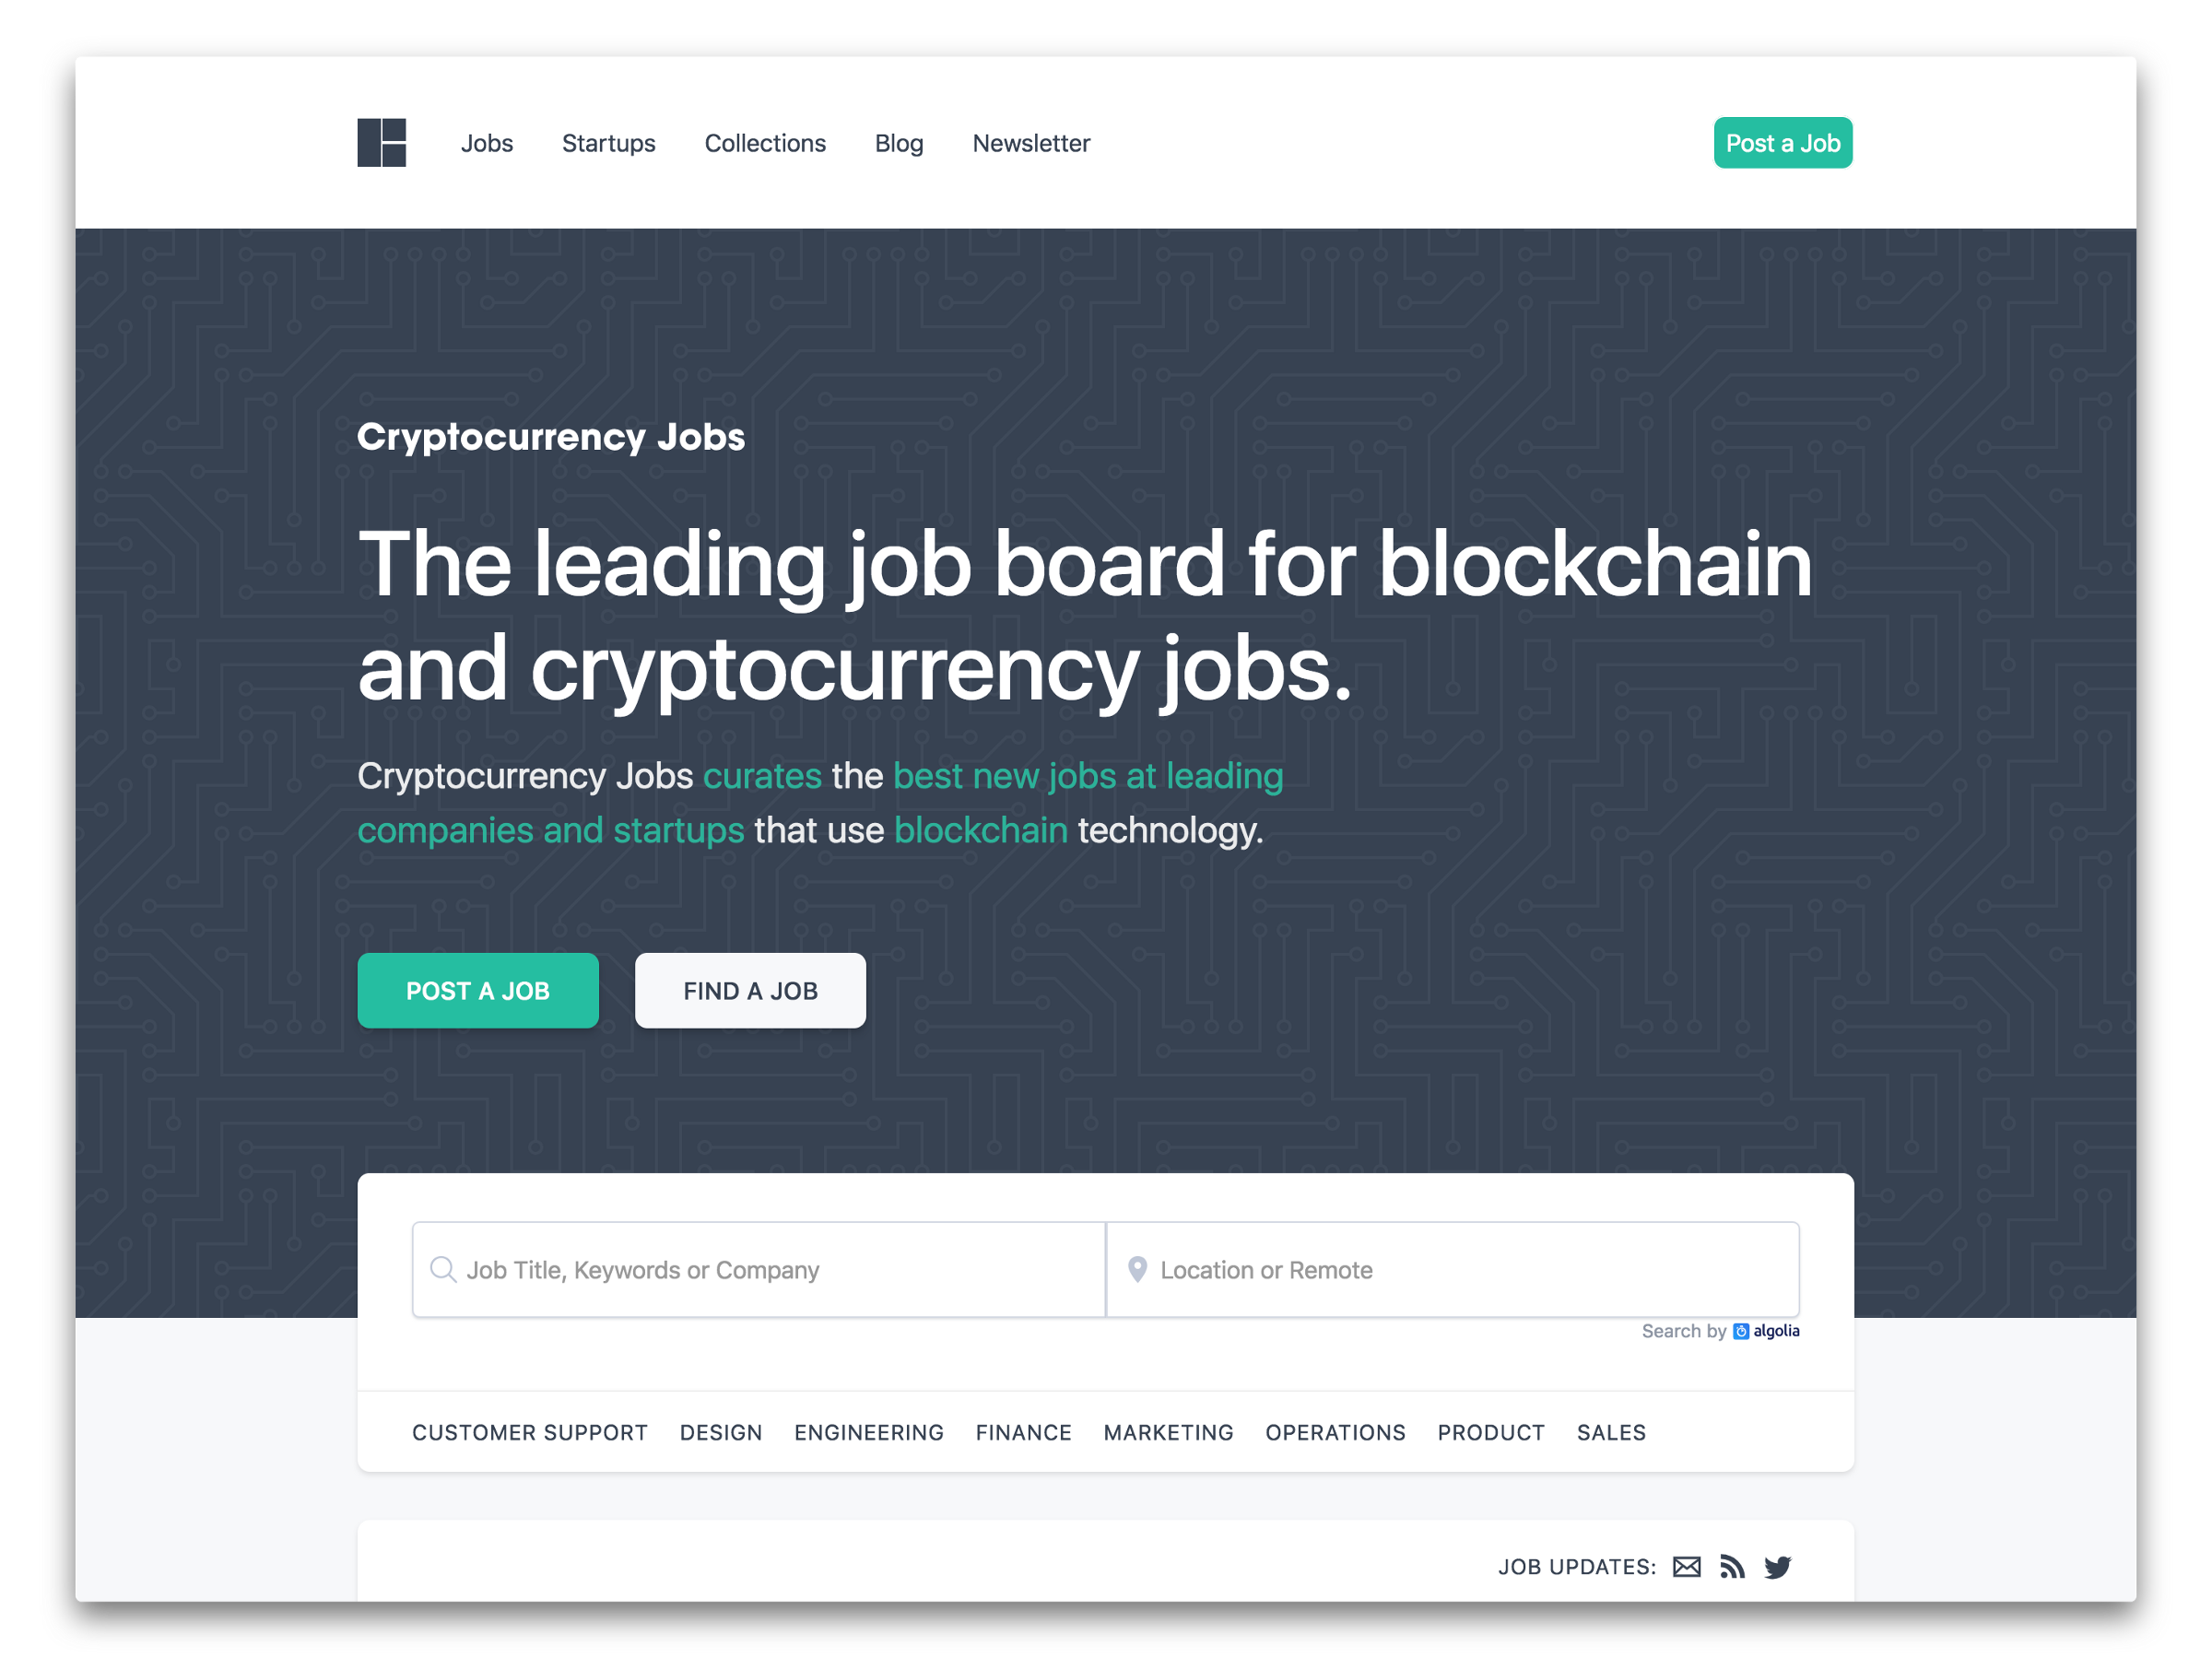 /state-of-the-blockchain-and-cryptocurrency-job-market-in-2018-aa3c0b58451f feature image